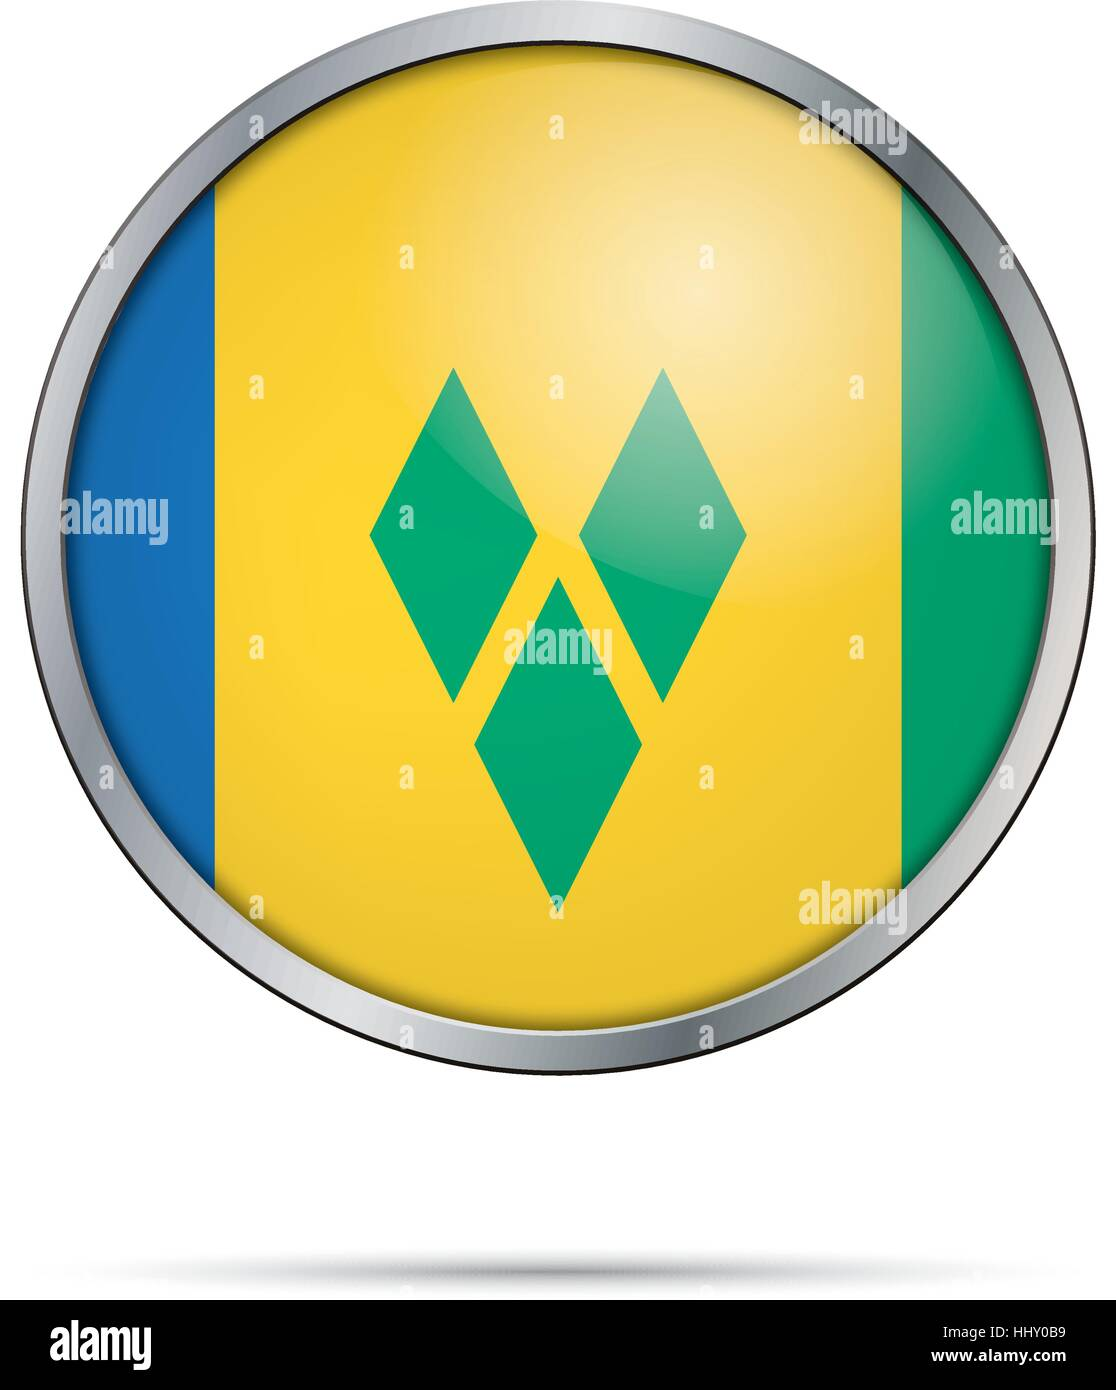 Vector Saint Vincent and the Grenadines flag in glass button style with metal frame. - Stock Vector